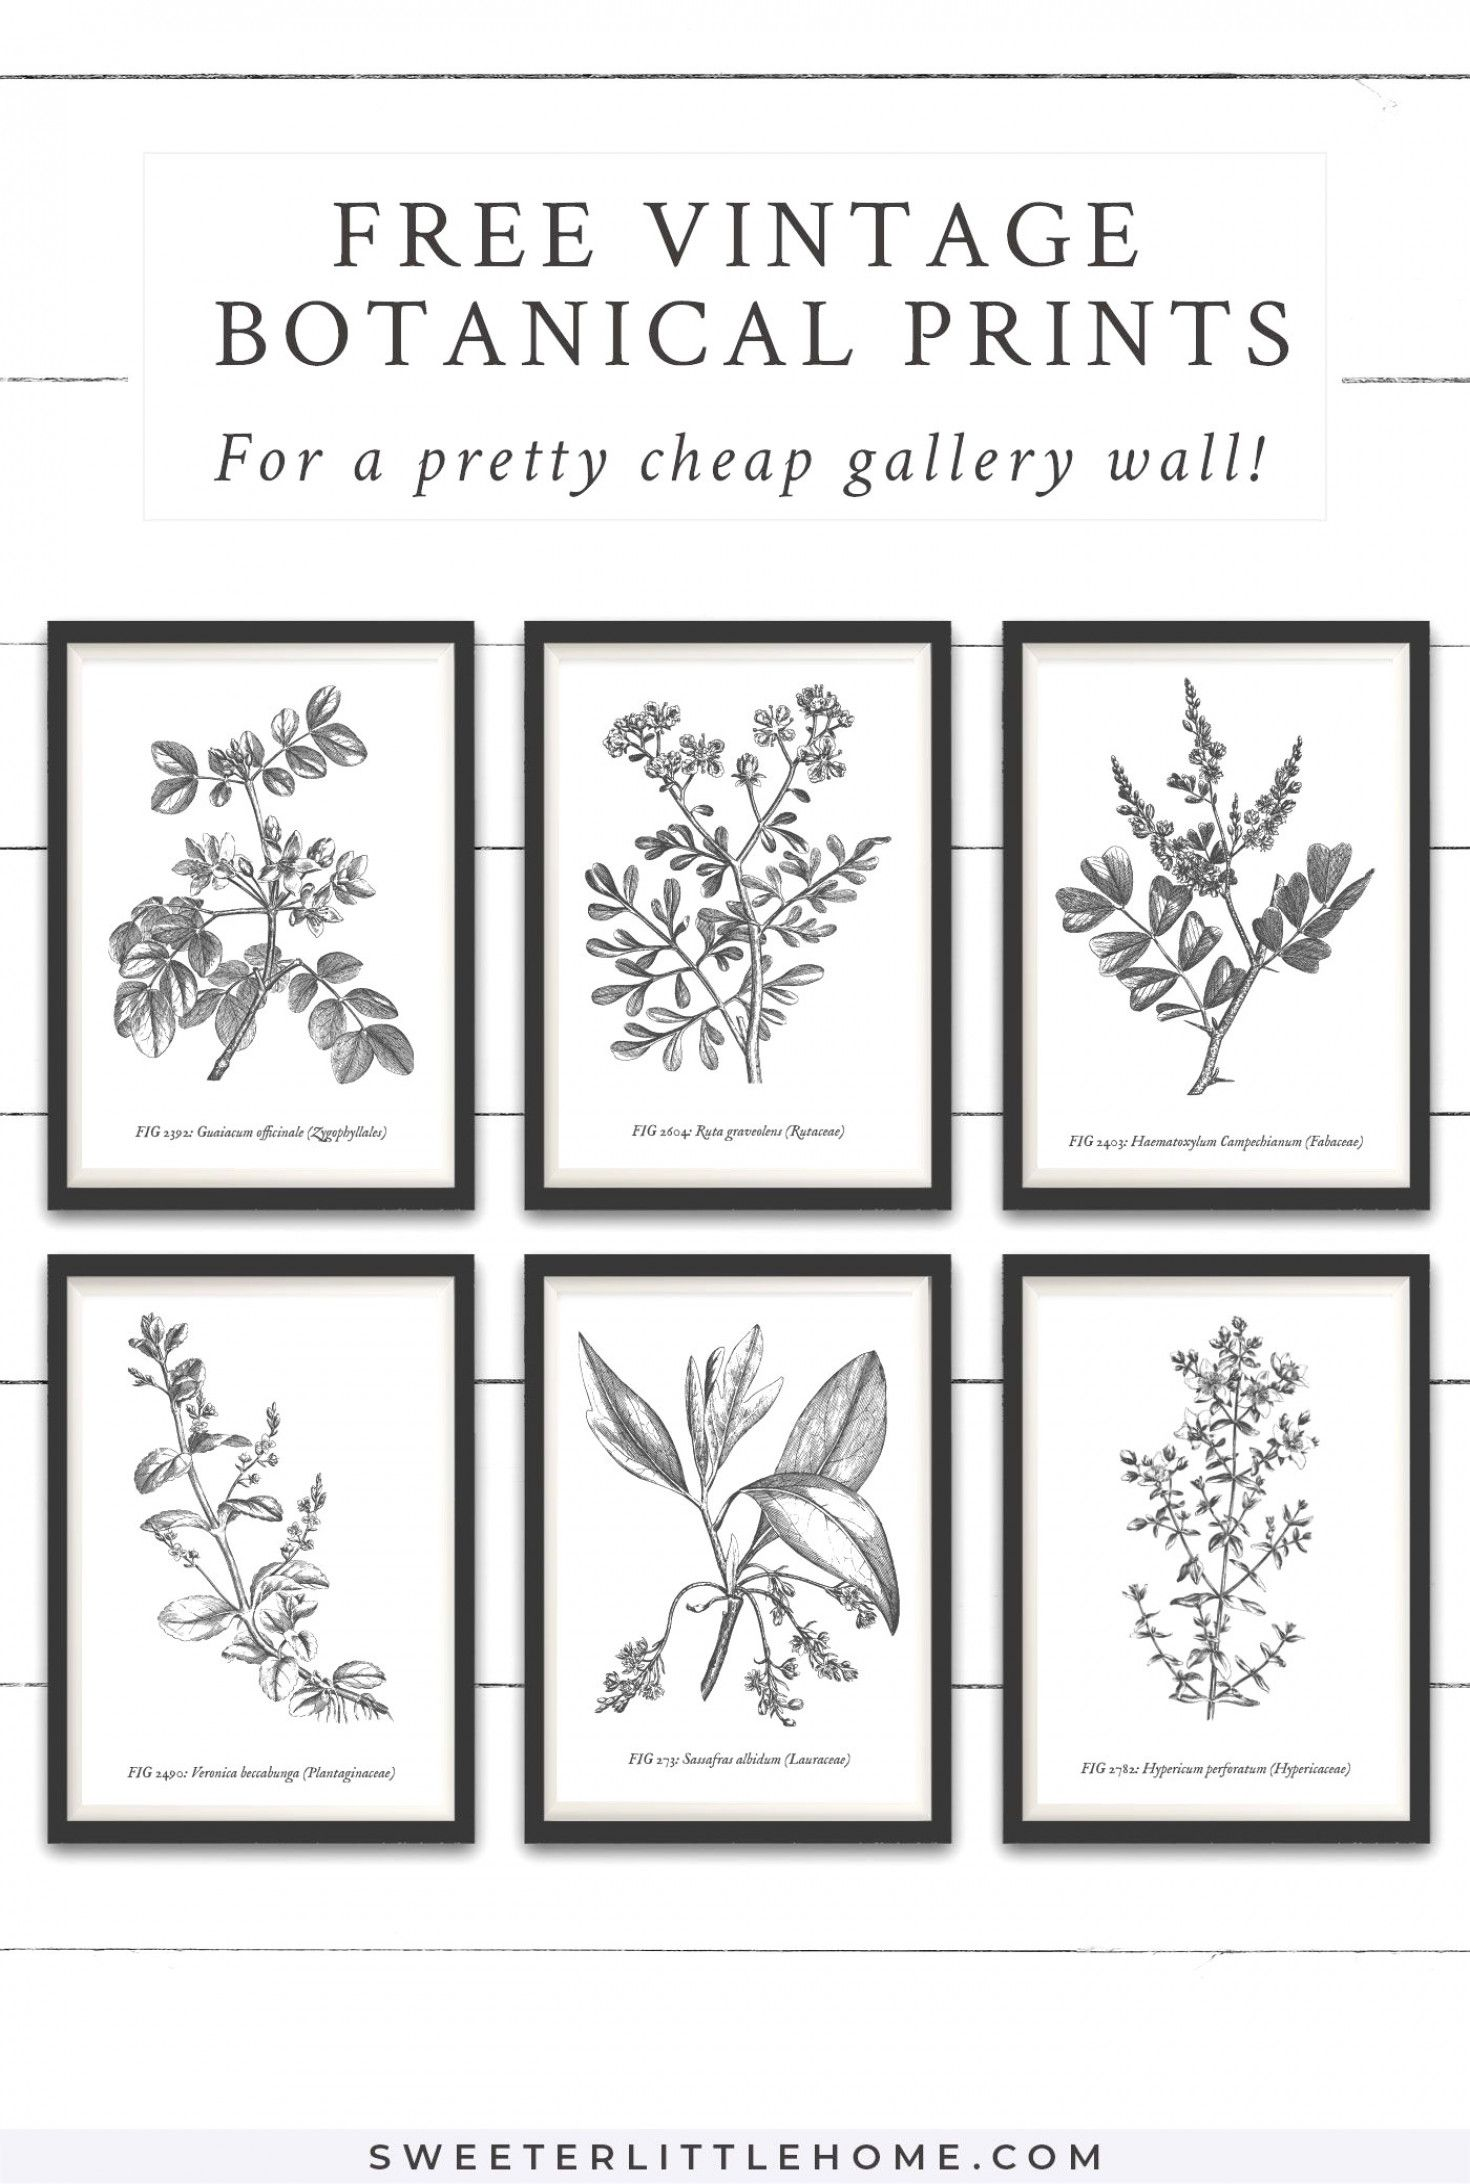 Download This Free Printable Vintage Botanical Wall Art To Create A Beautiful And Cheap Gal Free Printable Wall Art Botanical Wall Art Vintage Botanical Prints